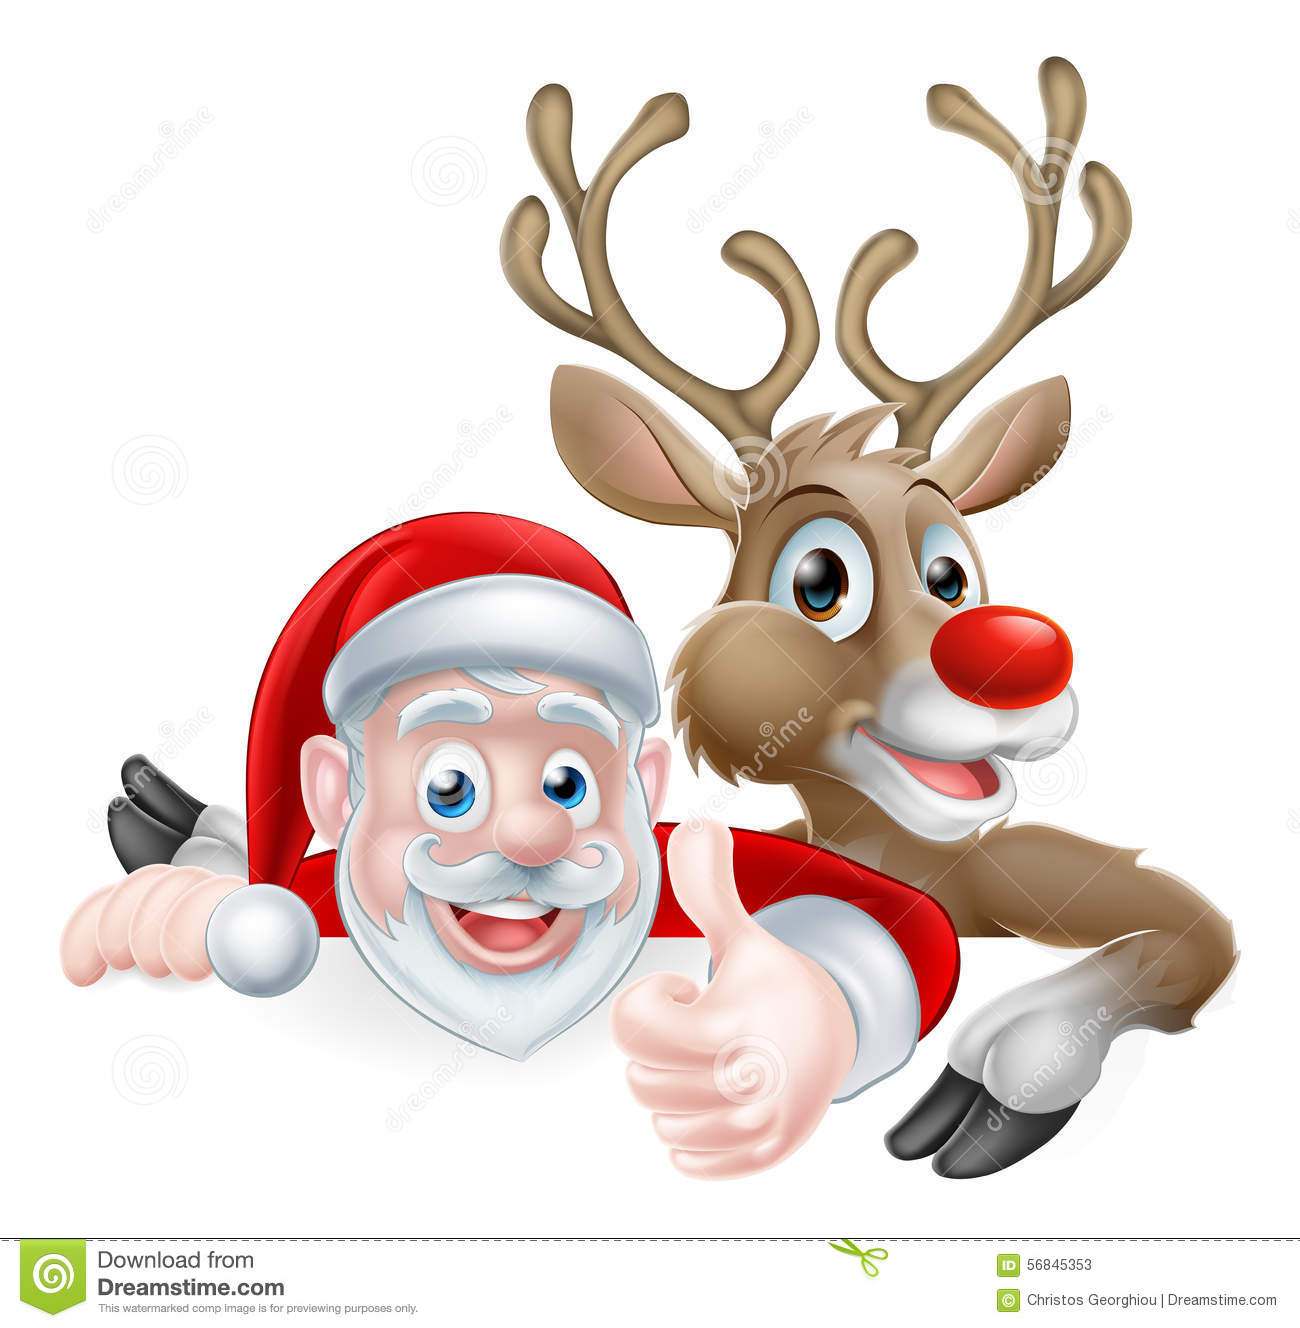 Christmas Giving Clipart.Santa And Reindeer Sign Stock Vector Illustration Of